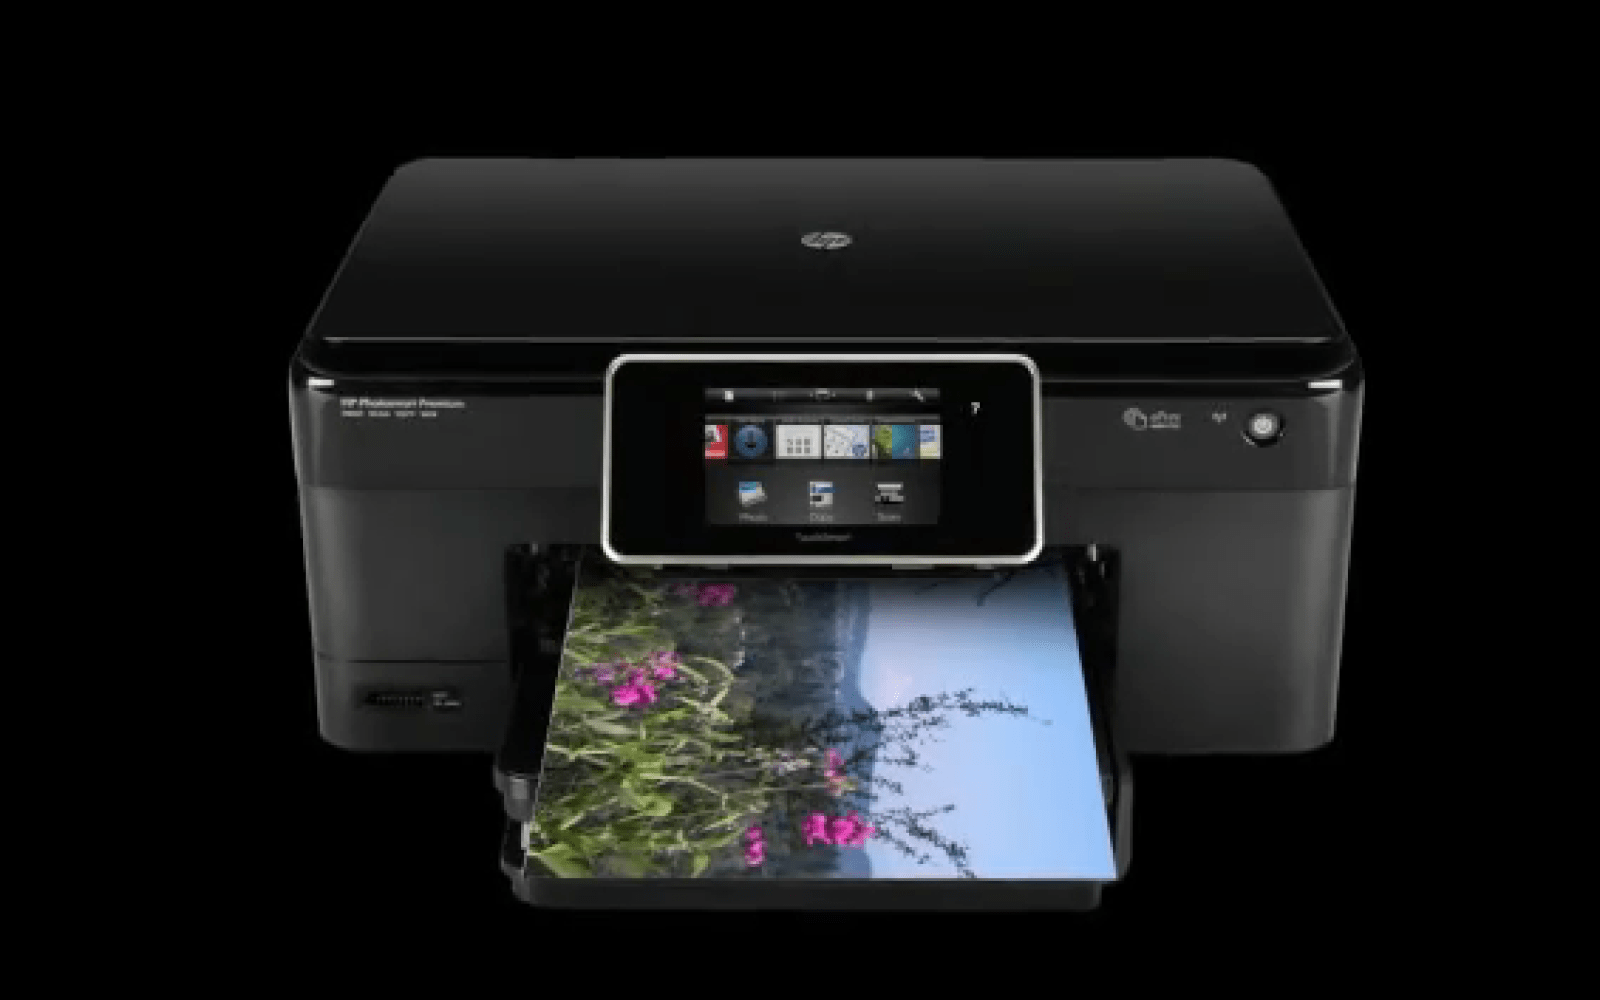 Hp Unveils Printer Control For Ios With Scan To Facebook Google